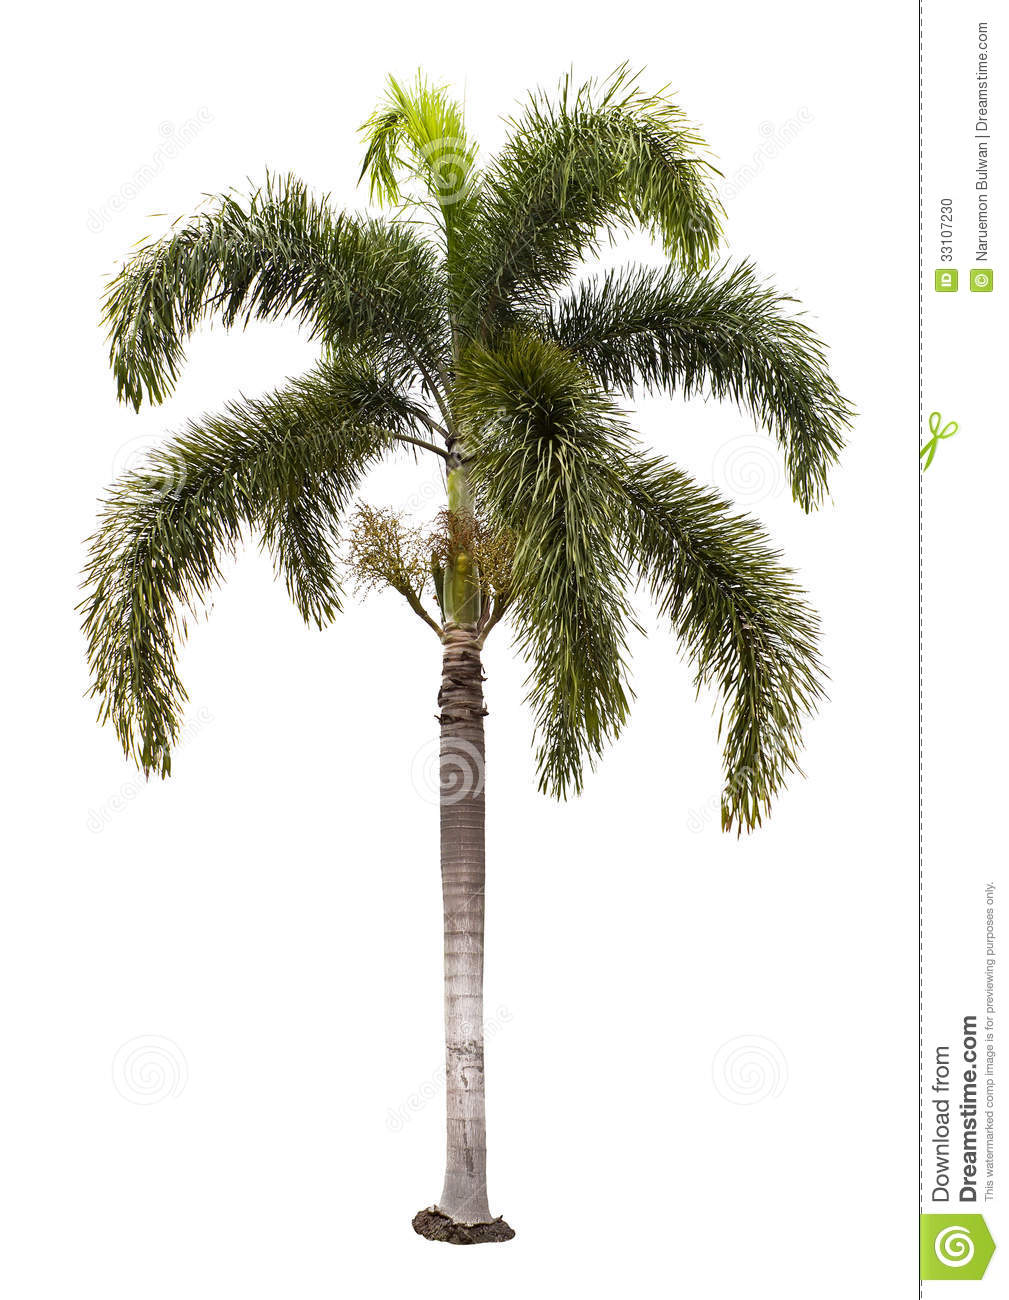 Wodyetia Bifurcata Palm Tree Isolated Stock Photo - Image: 33107230